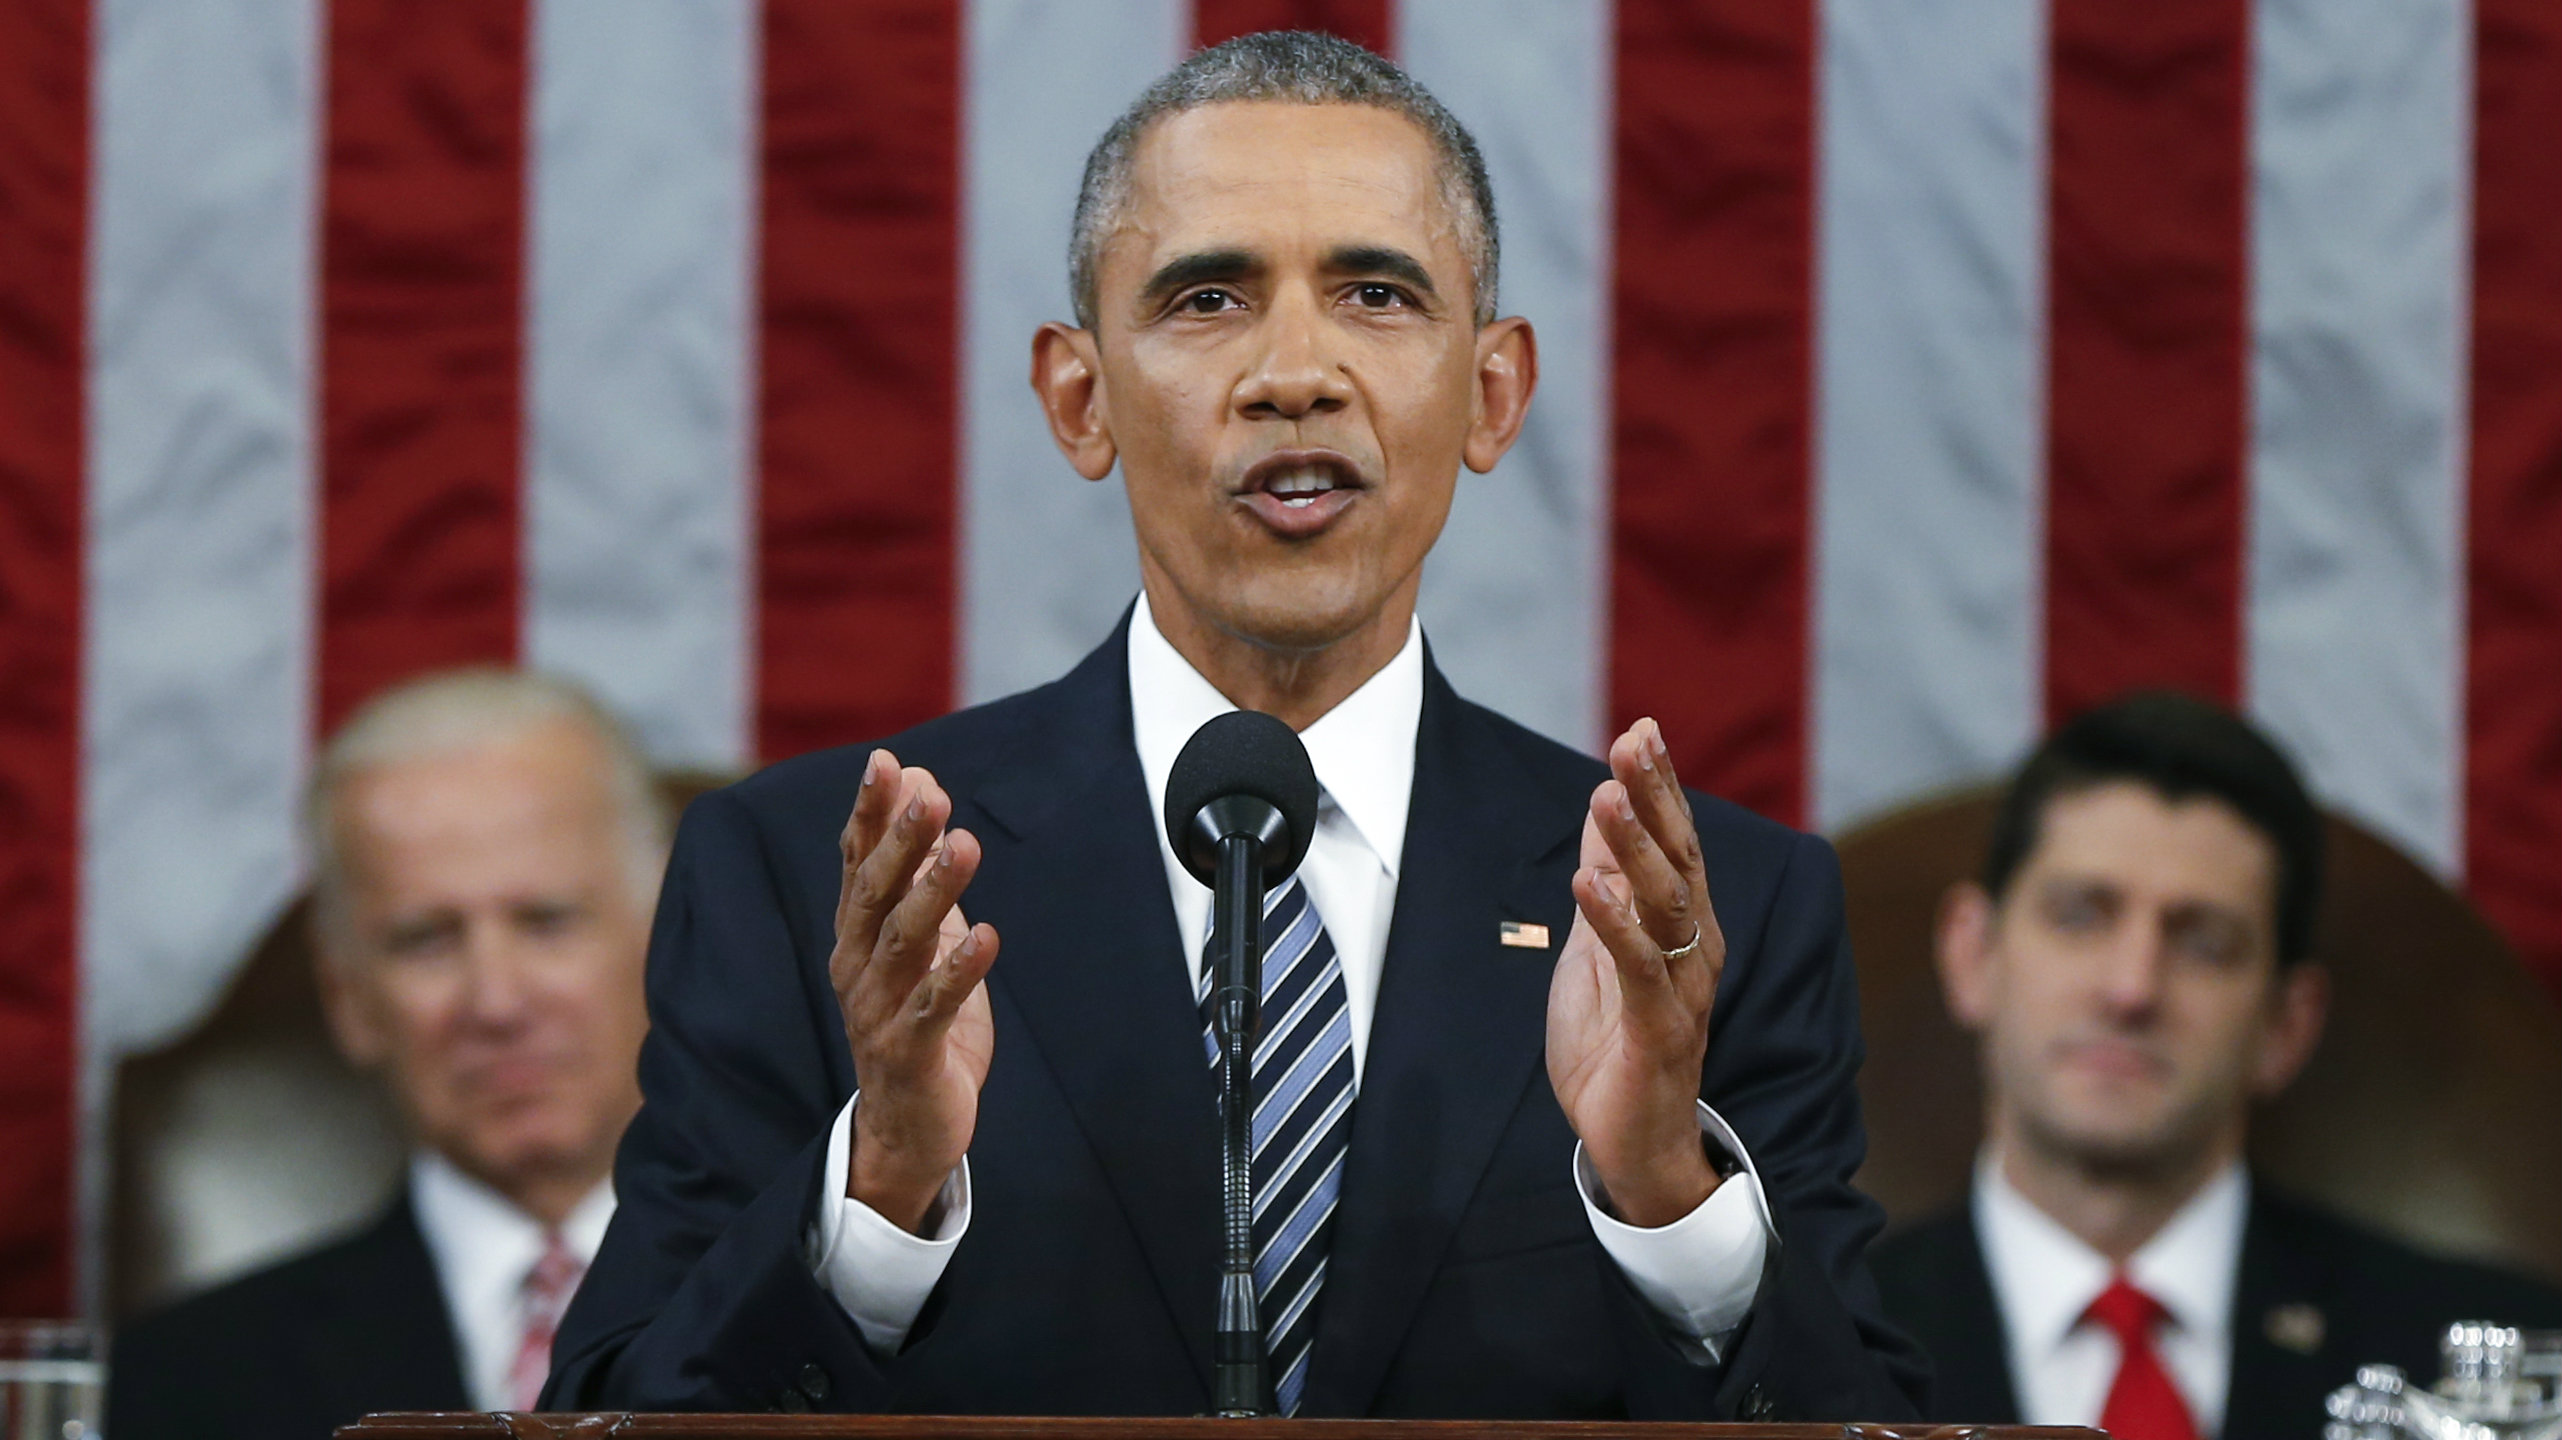 President Barack Obama delivers his final State of the Union address to a joint session of Congress in Washington January 12, 2016.